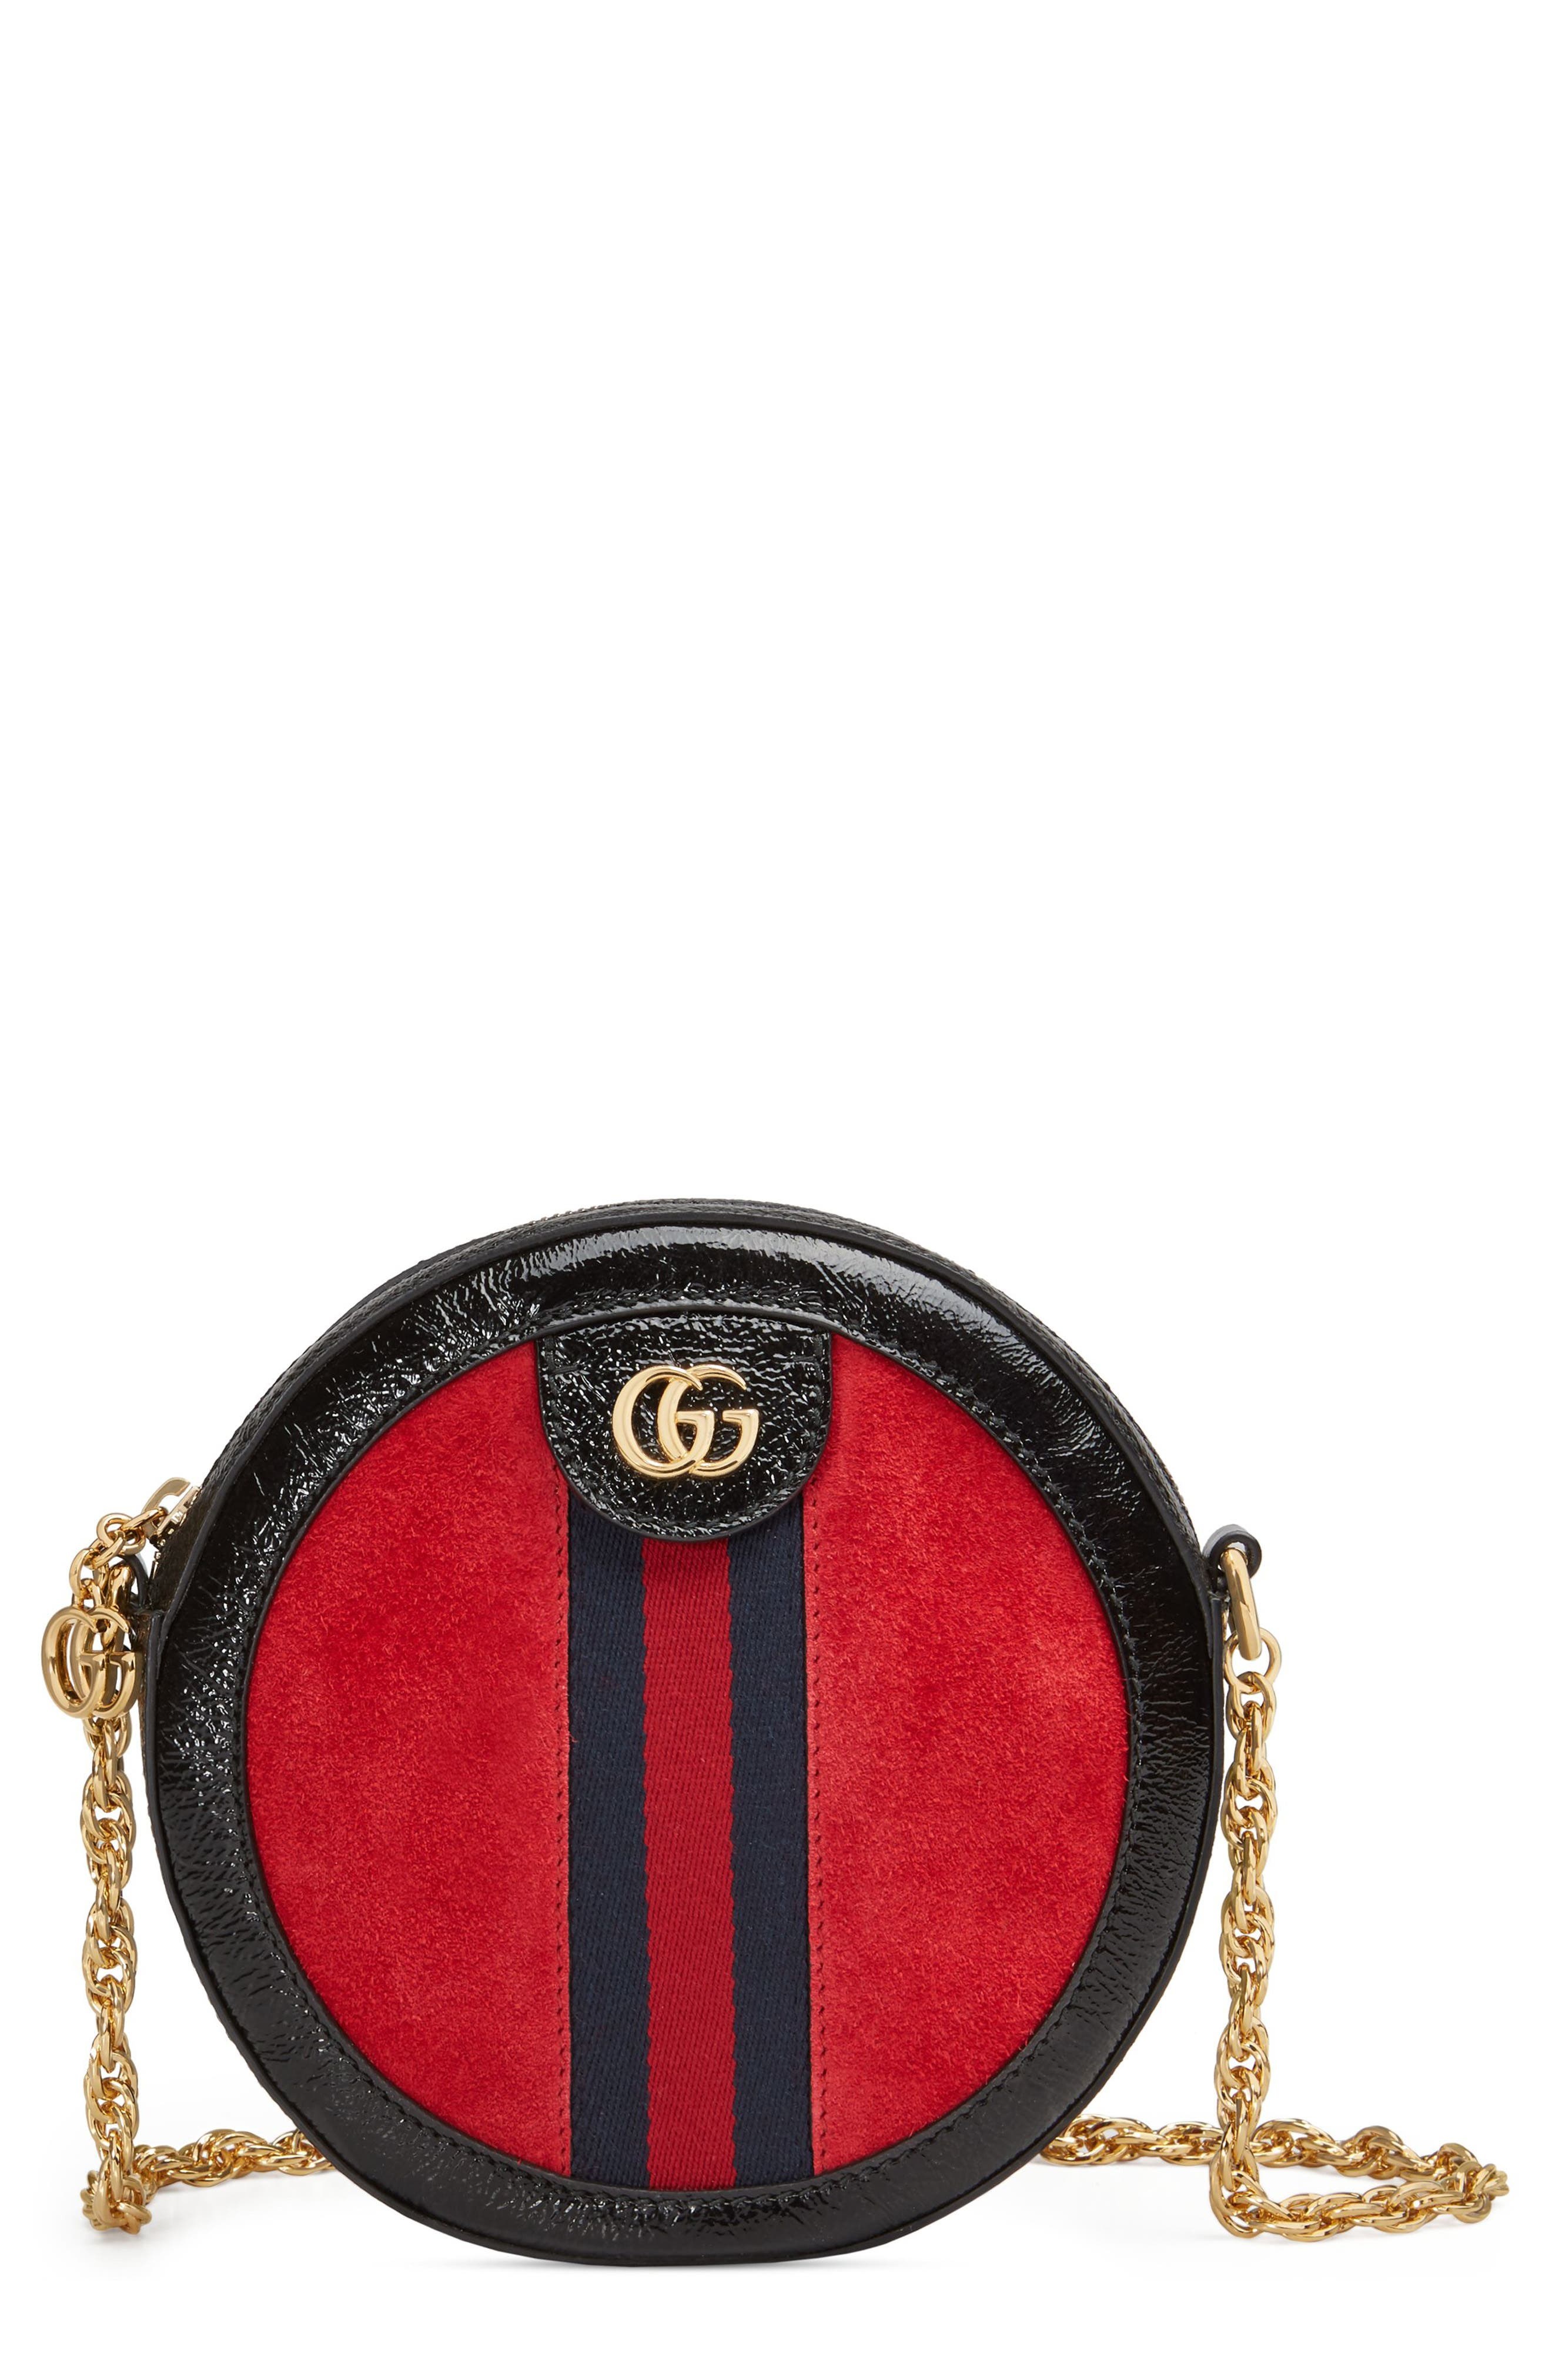 Mini Ophidia Round Shoulder Bag,                             Main thumbnail 1, color,                             HIBISCUS RED/ NERO/ BLUE